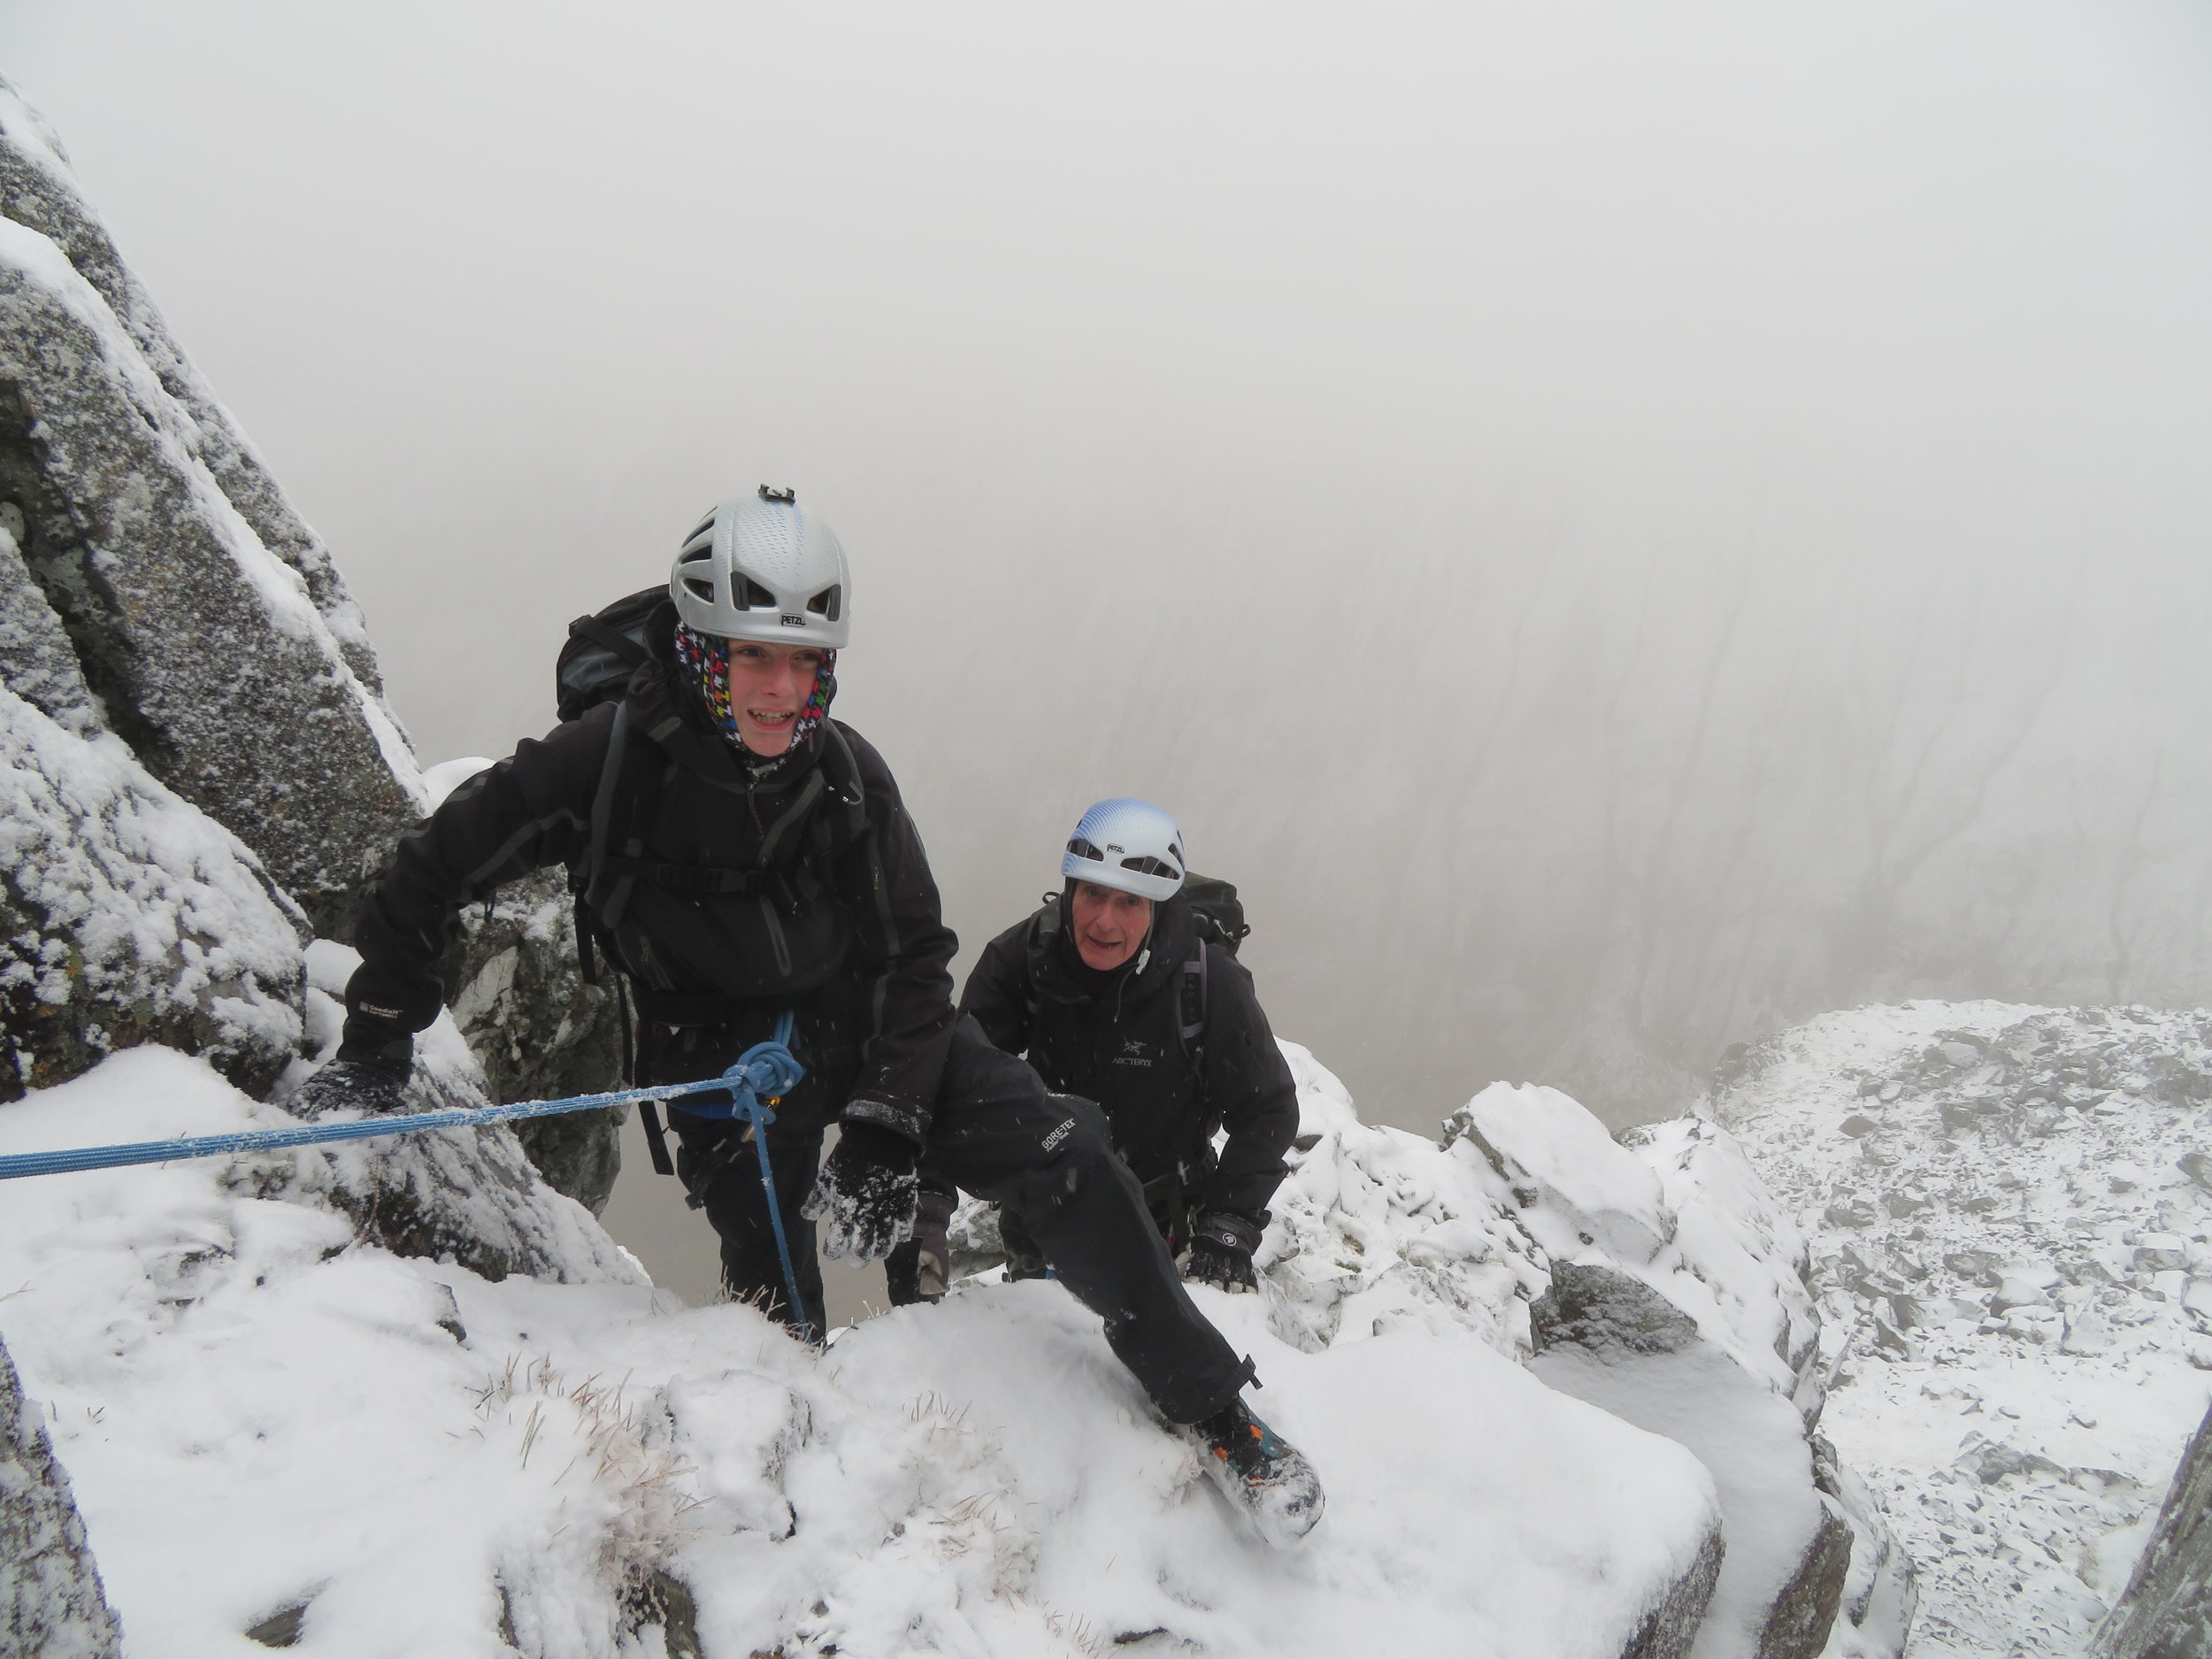 Kyle and Grandad Alan on Ledge Route during the first snows. This was Kyle's (12 years old) first time in the snowy mountains.